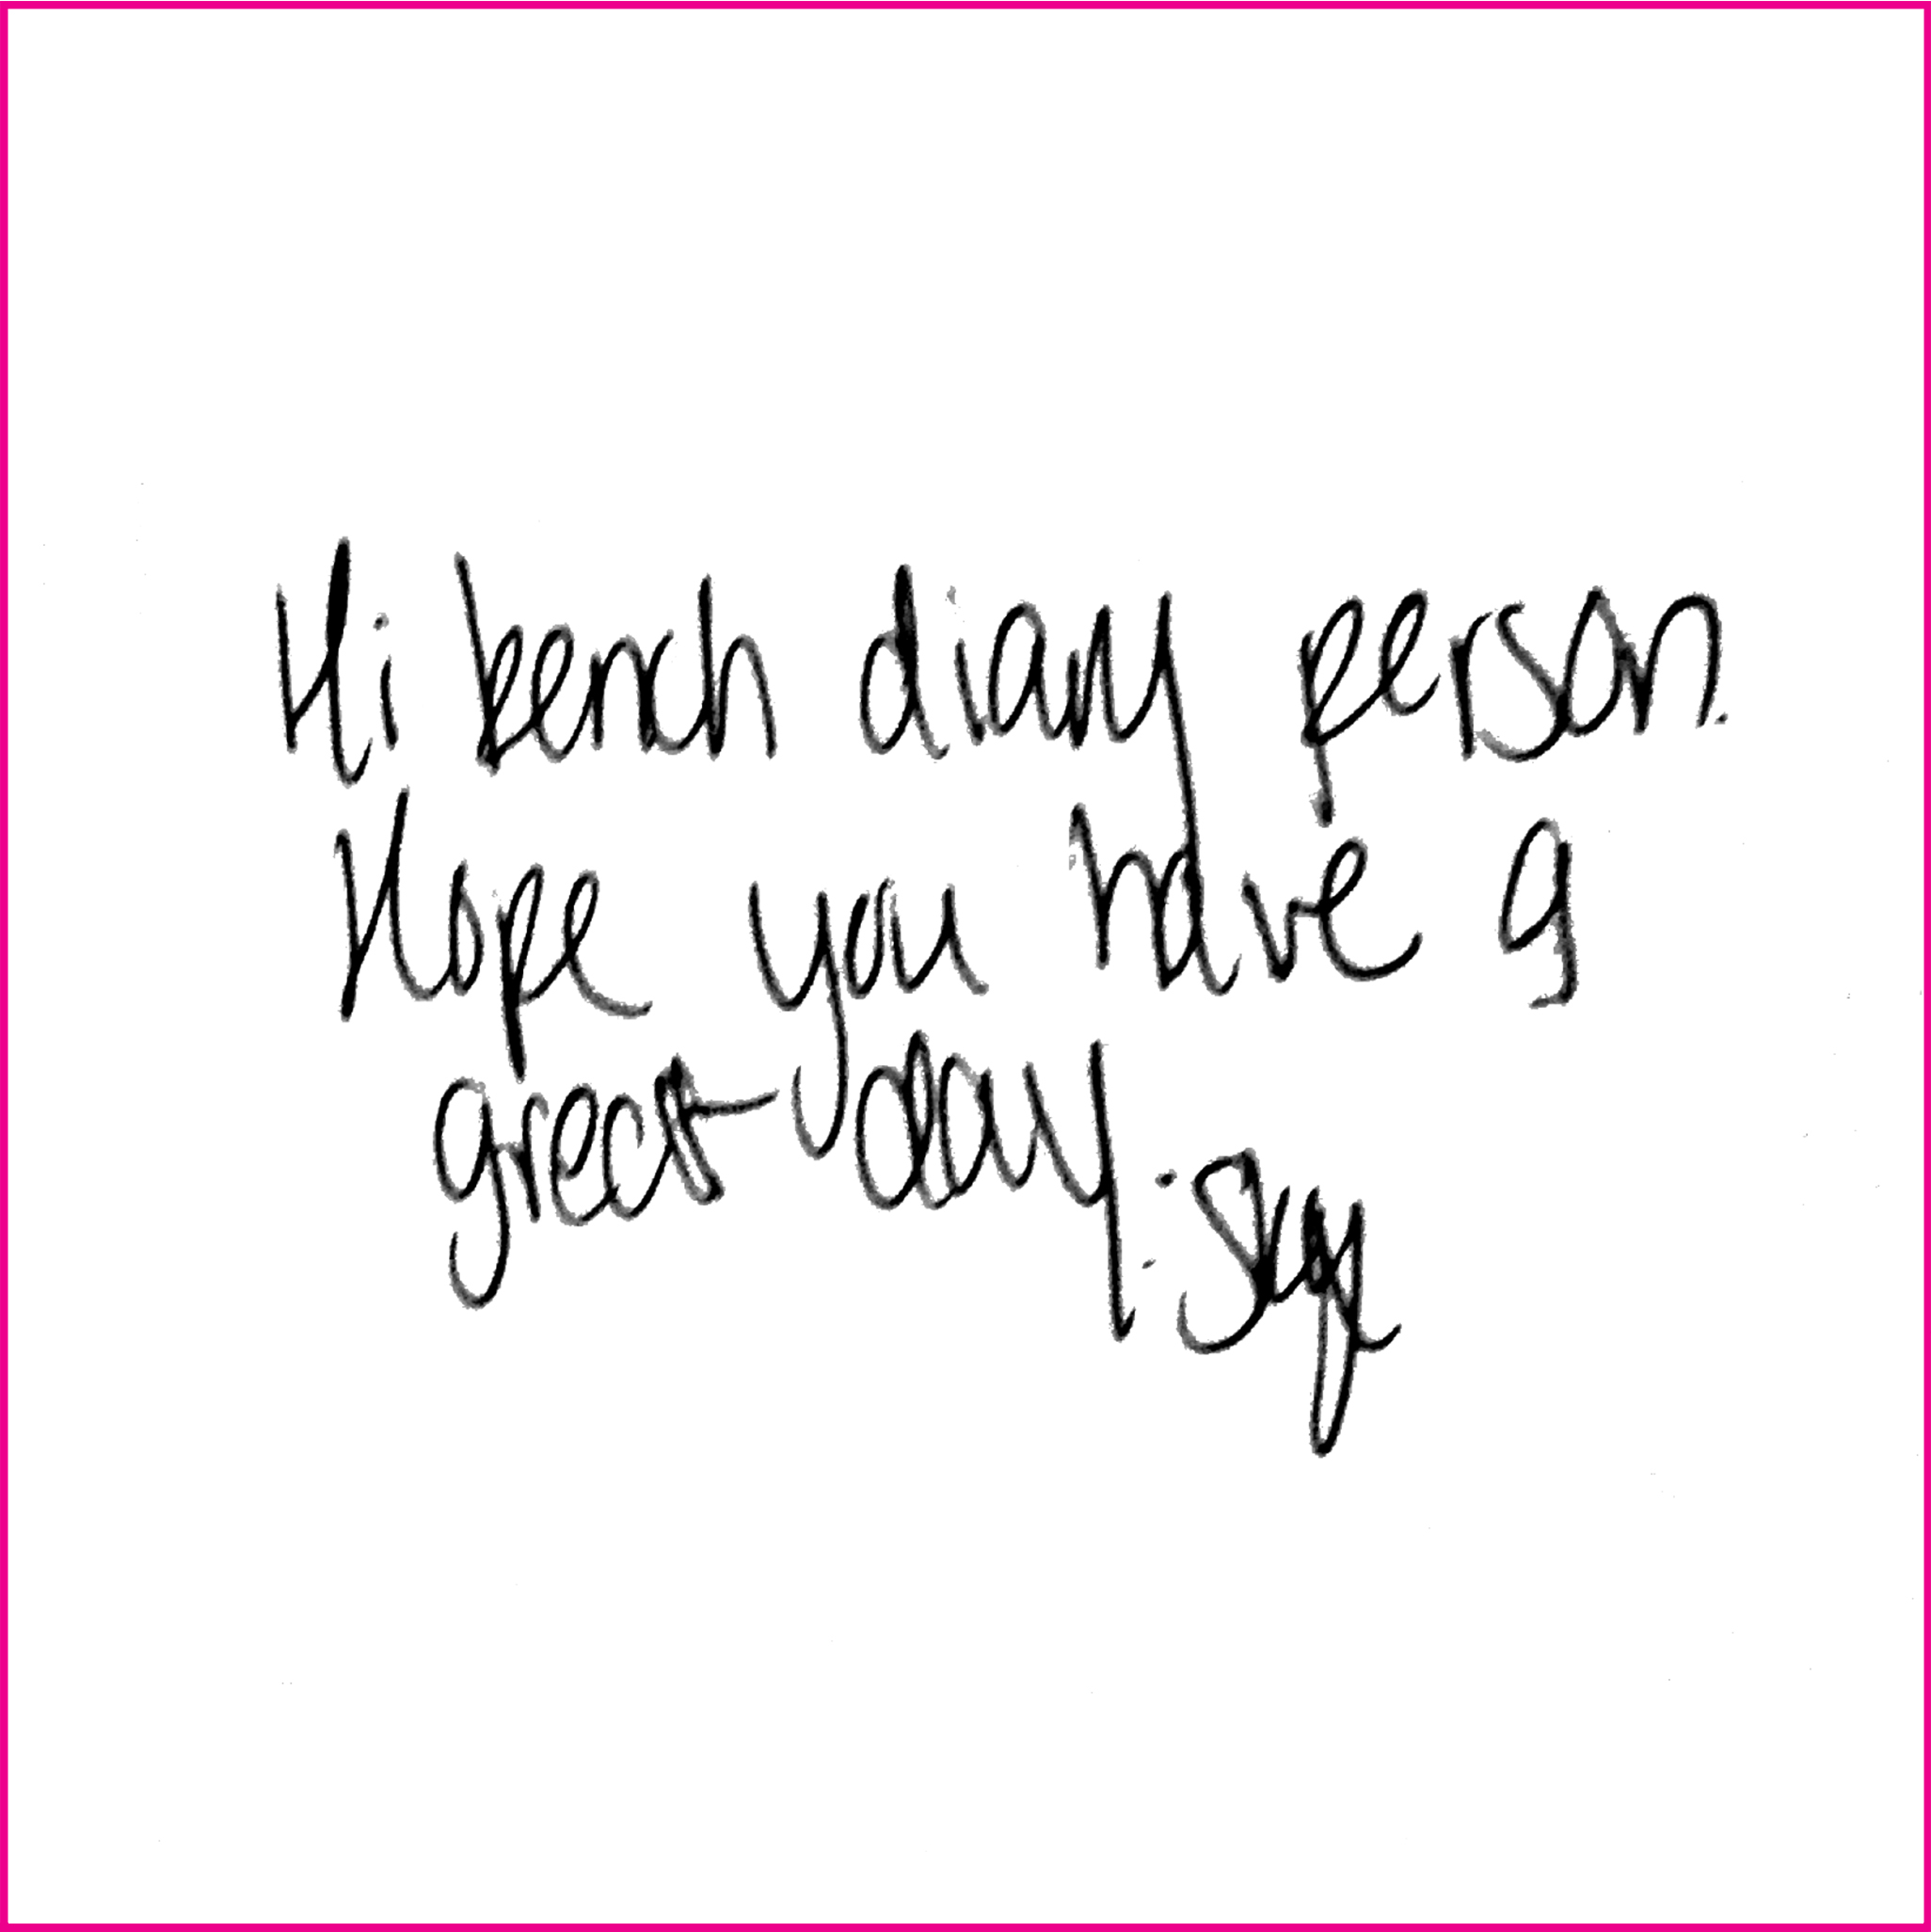 Hi Bench Diary person. I hope you have a great day.